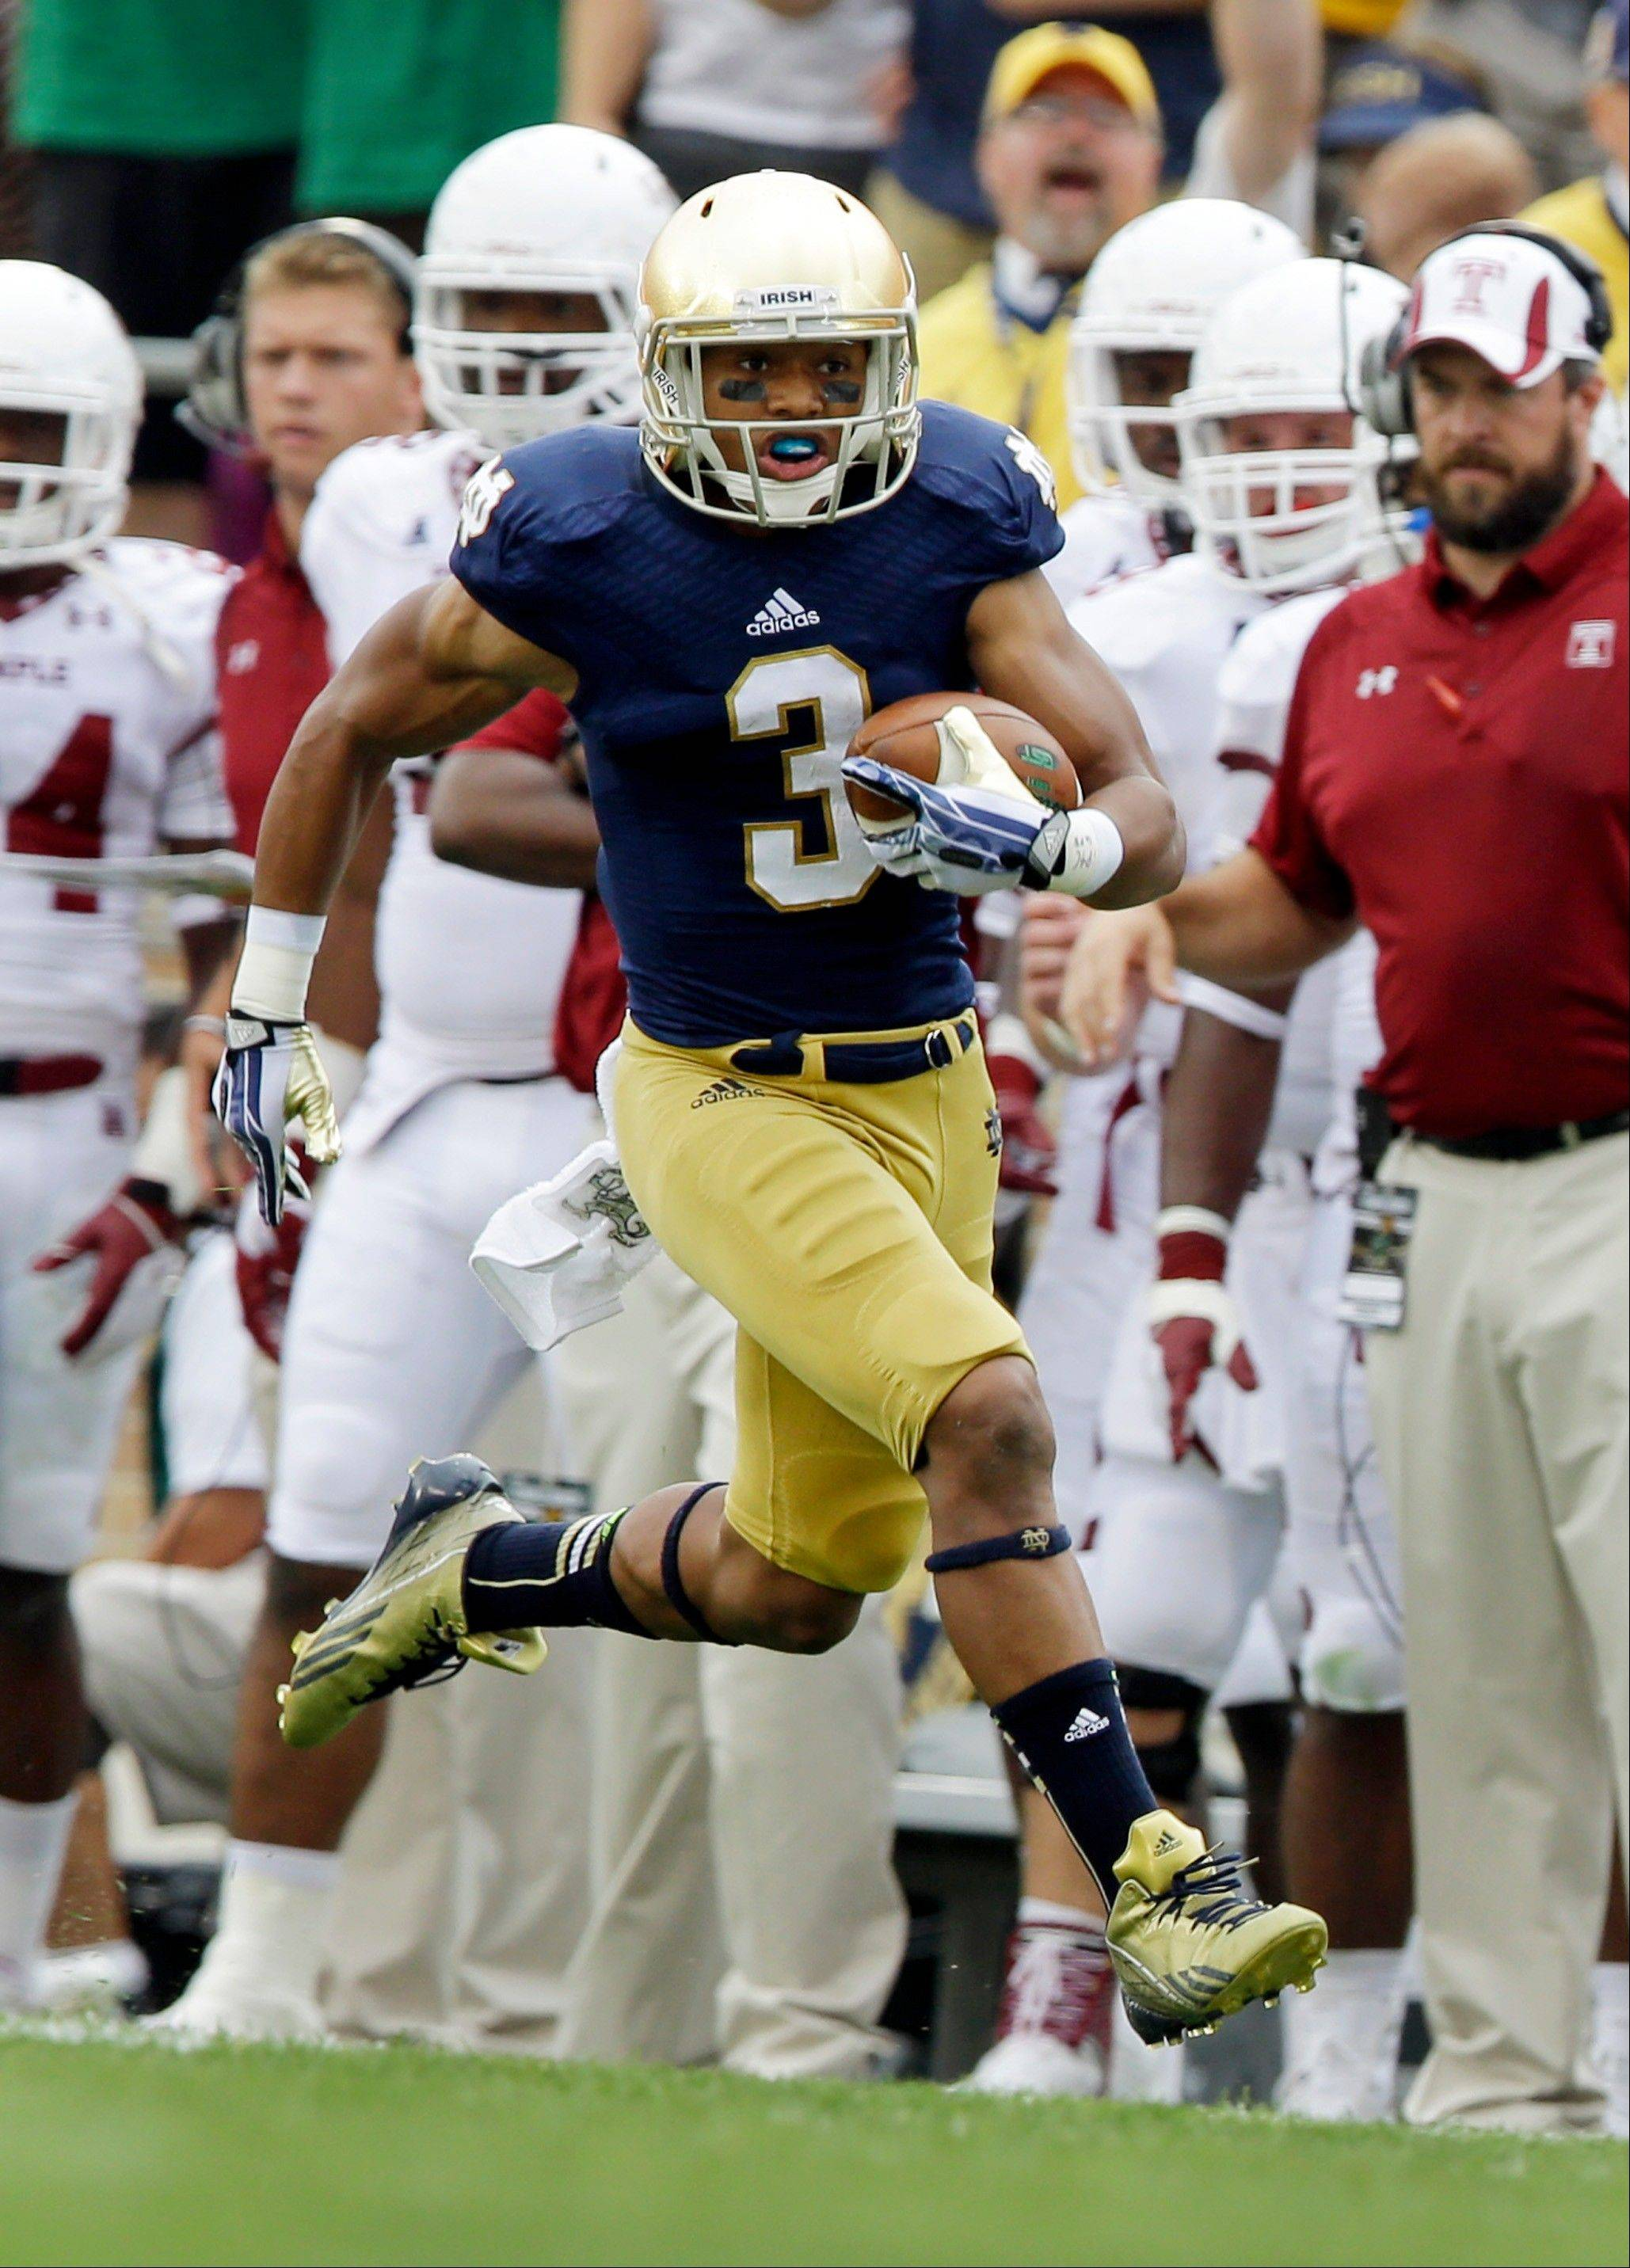 Notre Dame running back Amir Carlisle has rushed for 132 yards on 19 carries in two games.